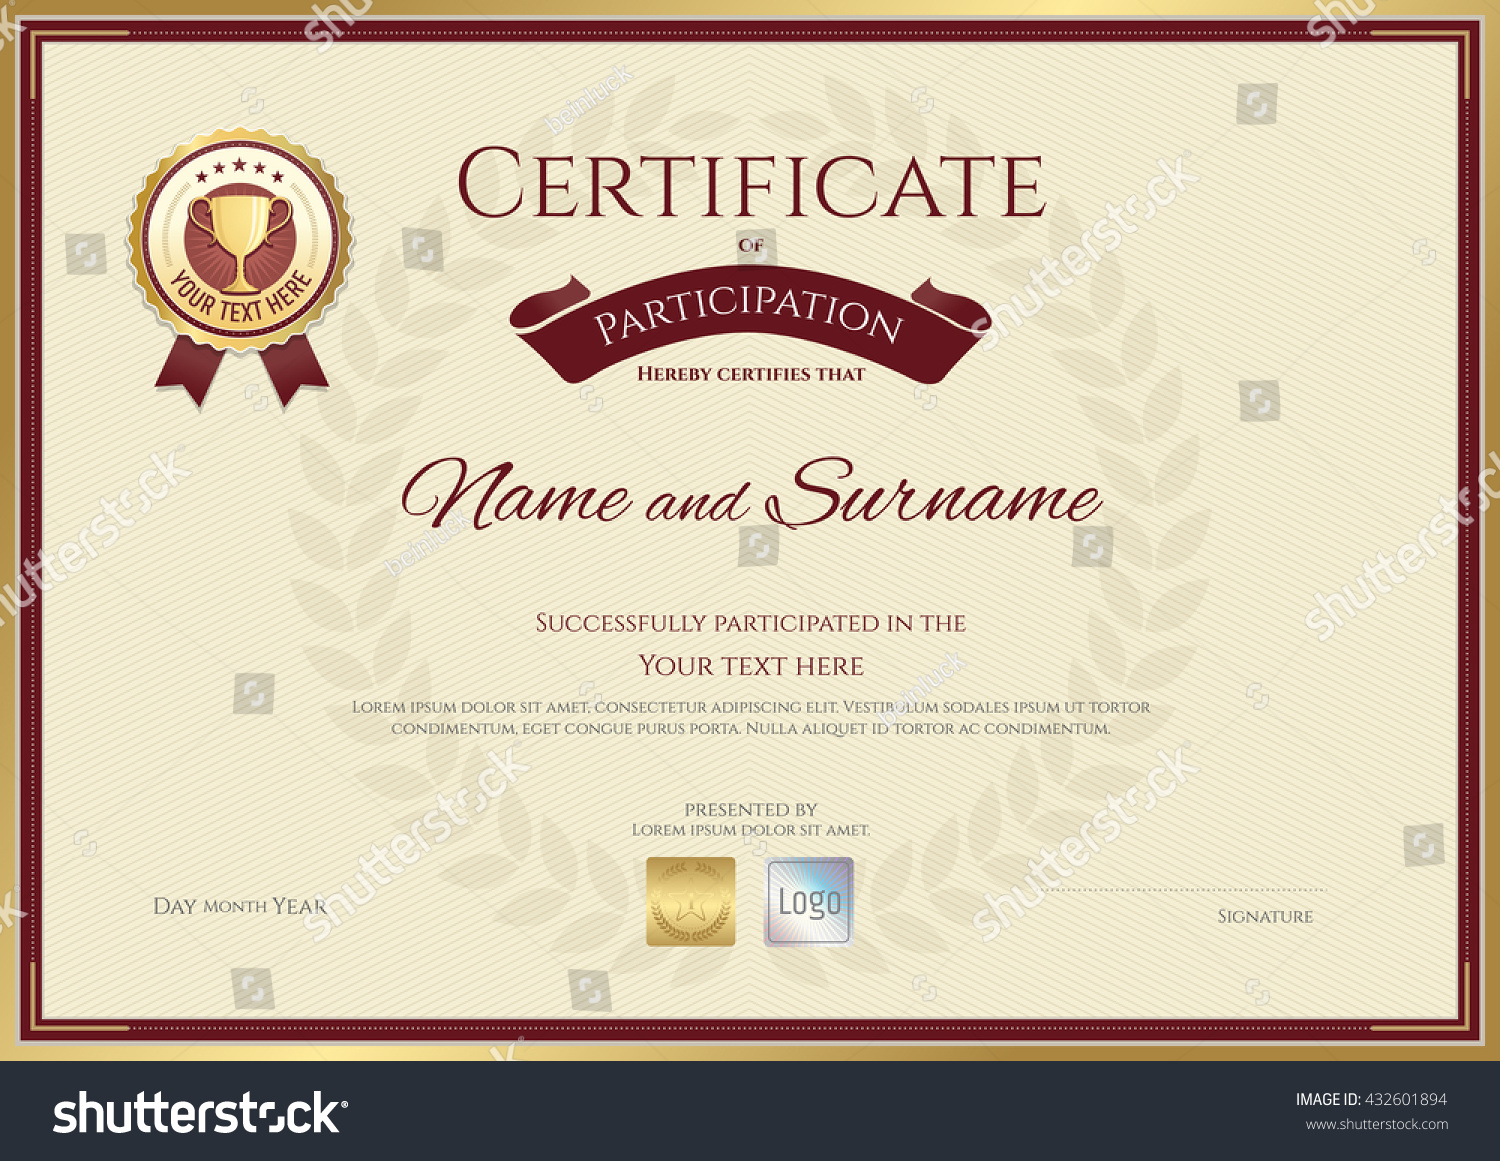 certificate participation template sport theme gold stock vector certificate of participation template in sport theme gold trophy seal on award wreath